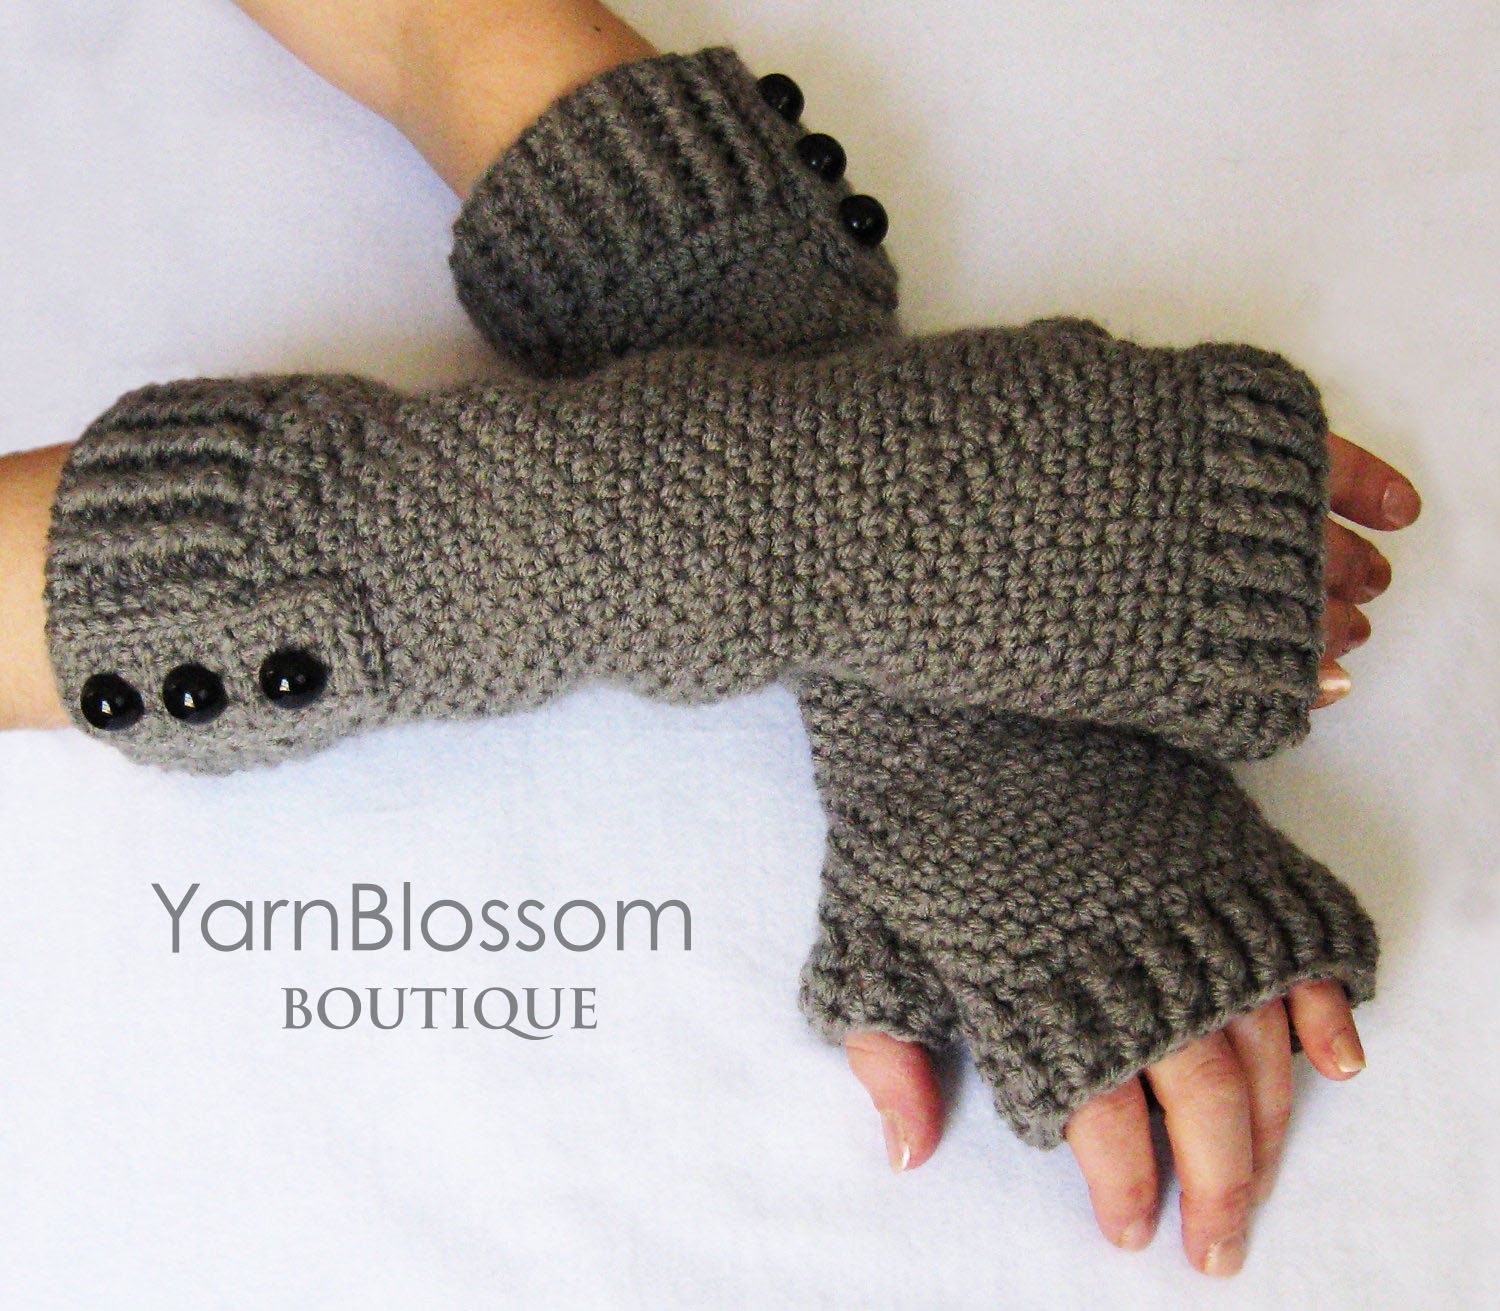 Crochet pattern fingerless gloves sizes by yarnblossomboutique crochet pattern fingerless gloves sizes by yarnblossomboutique 499 bankloansurffo Image collections